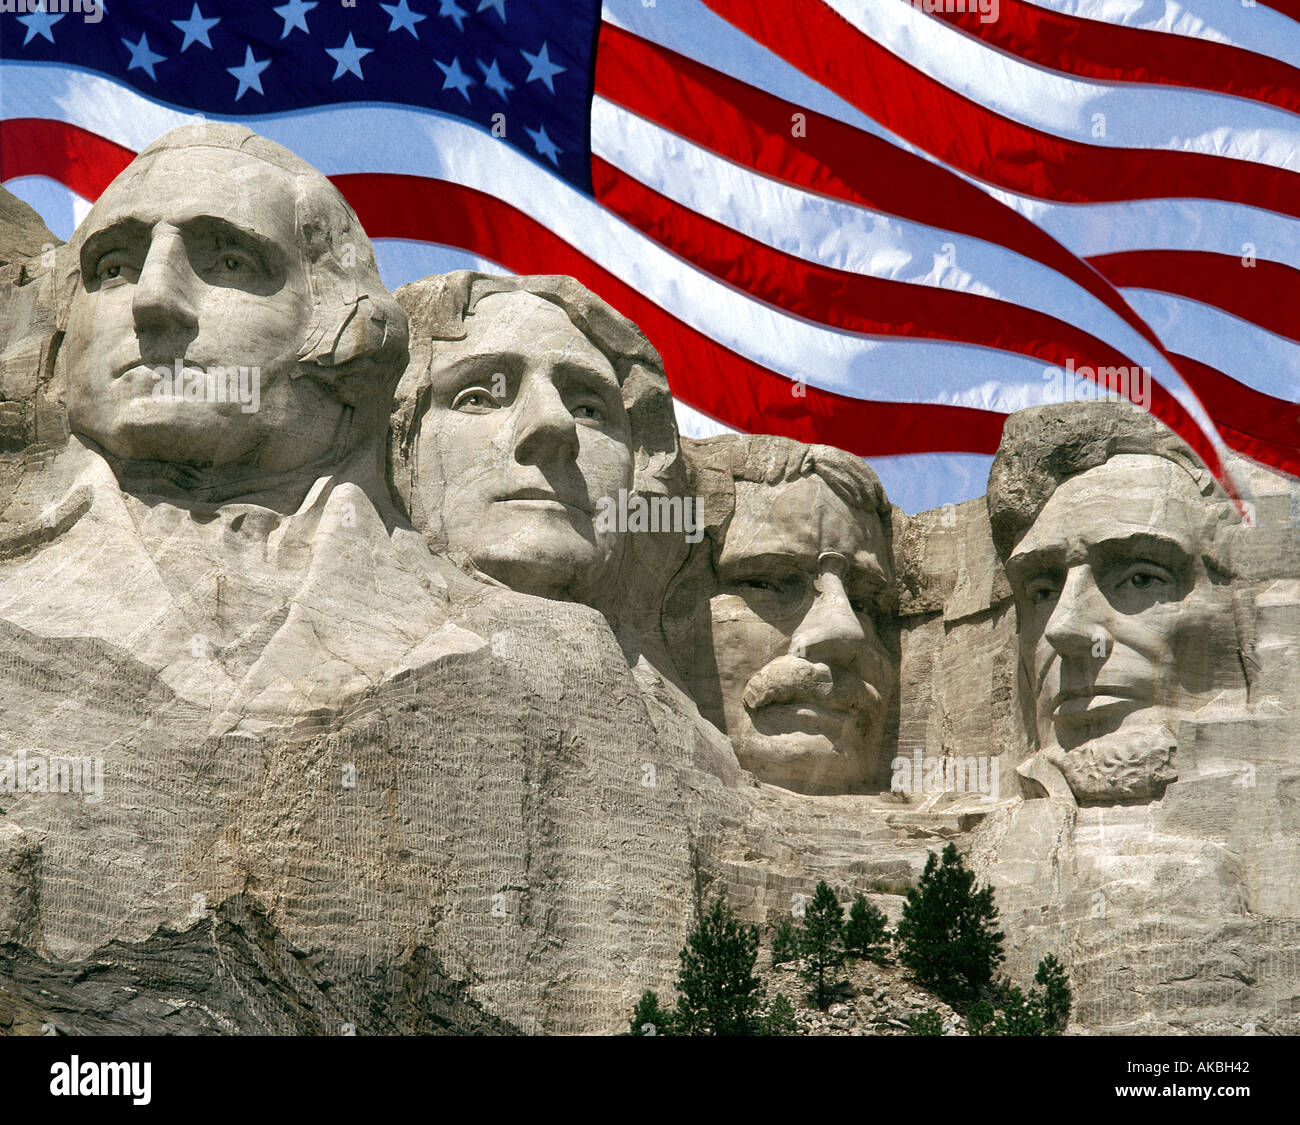 USA - SOUTH DAKOTA: Mount Rushmore National Monument - Stock Image